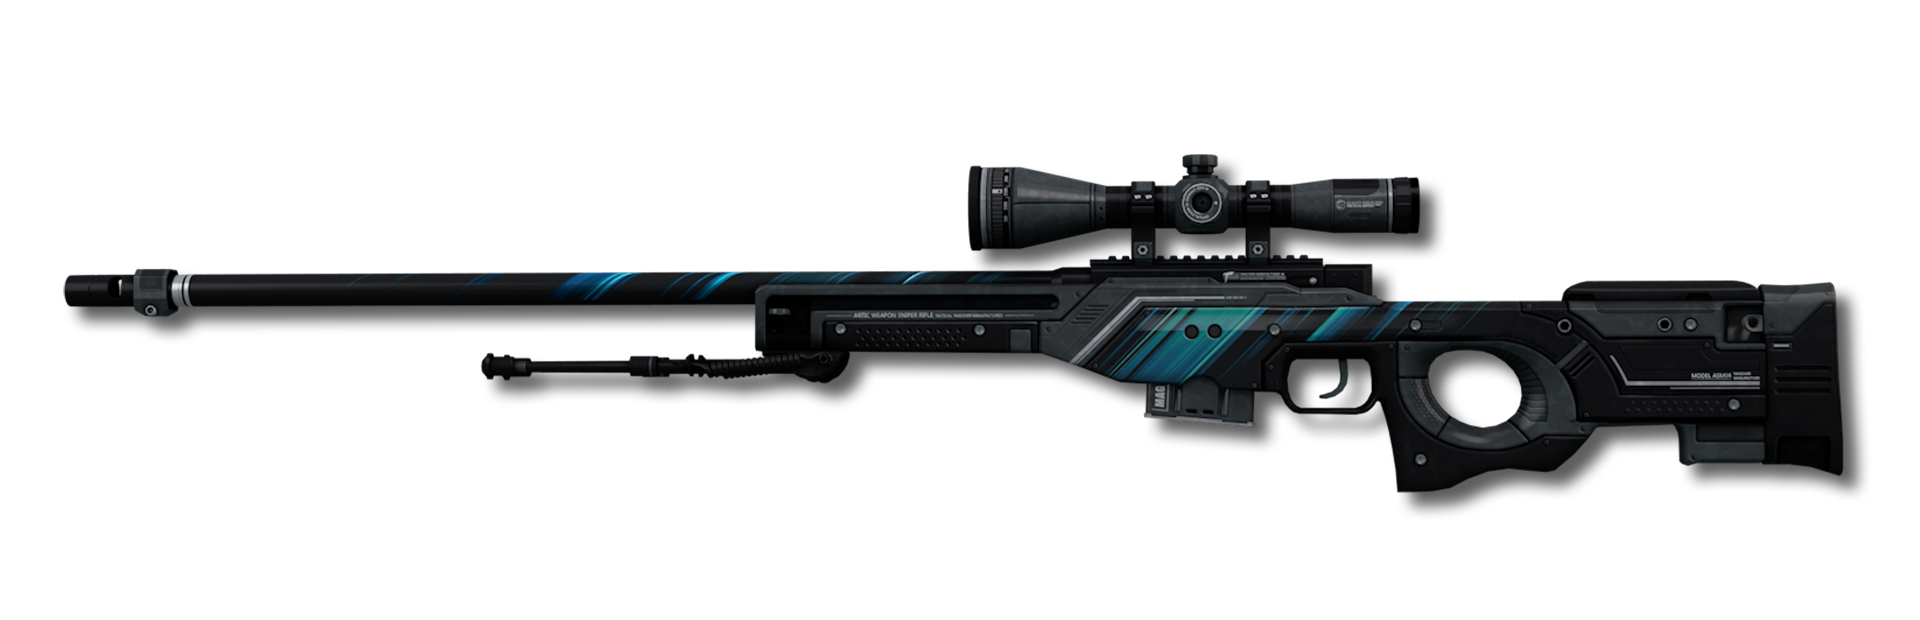 Counter strike global offensive awp png. Steam workshop chevy description